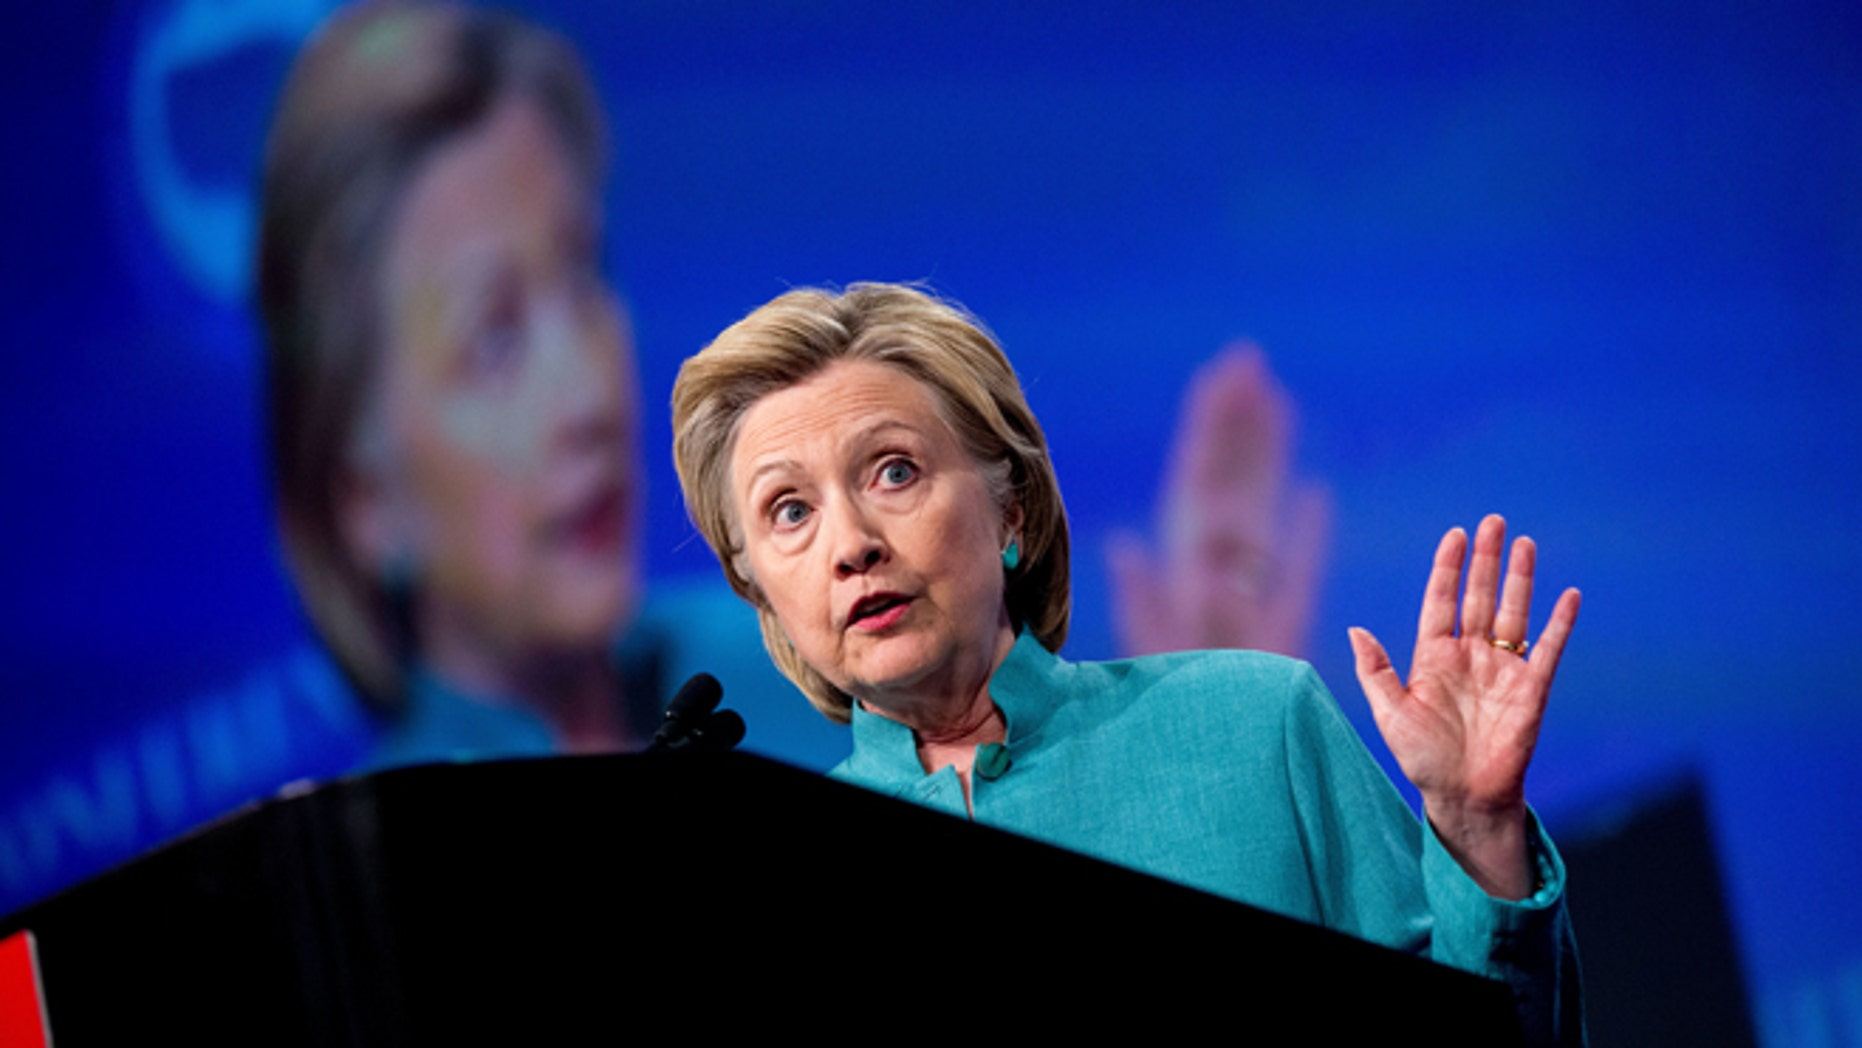 Democratic presidential candidate Hillary Clinton speaks at the U.S. Conference of Mayors in Indianapolis, Sunday, June 26, 2016, on the United Kingdom's vote to leave the European Union, America's economy, and other issues. (AP Photo/Andrew Harnik)